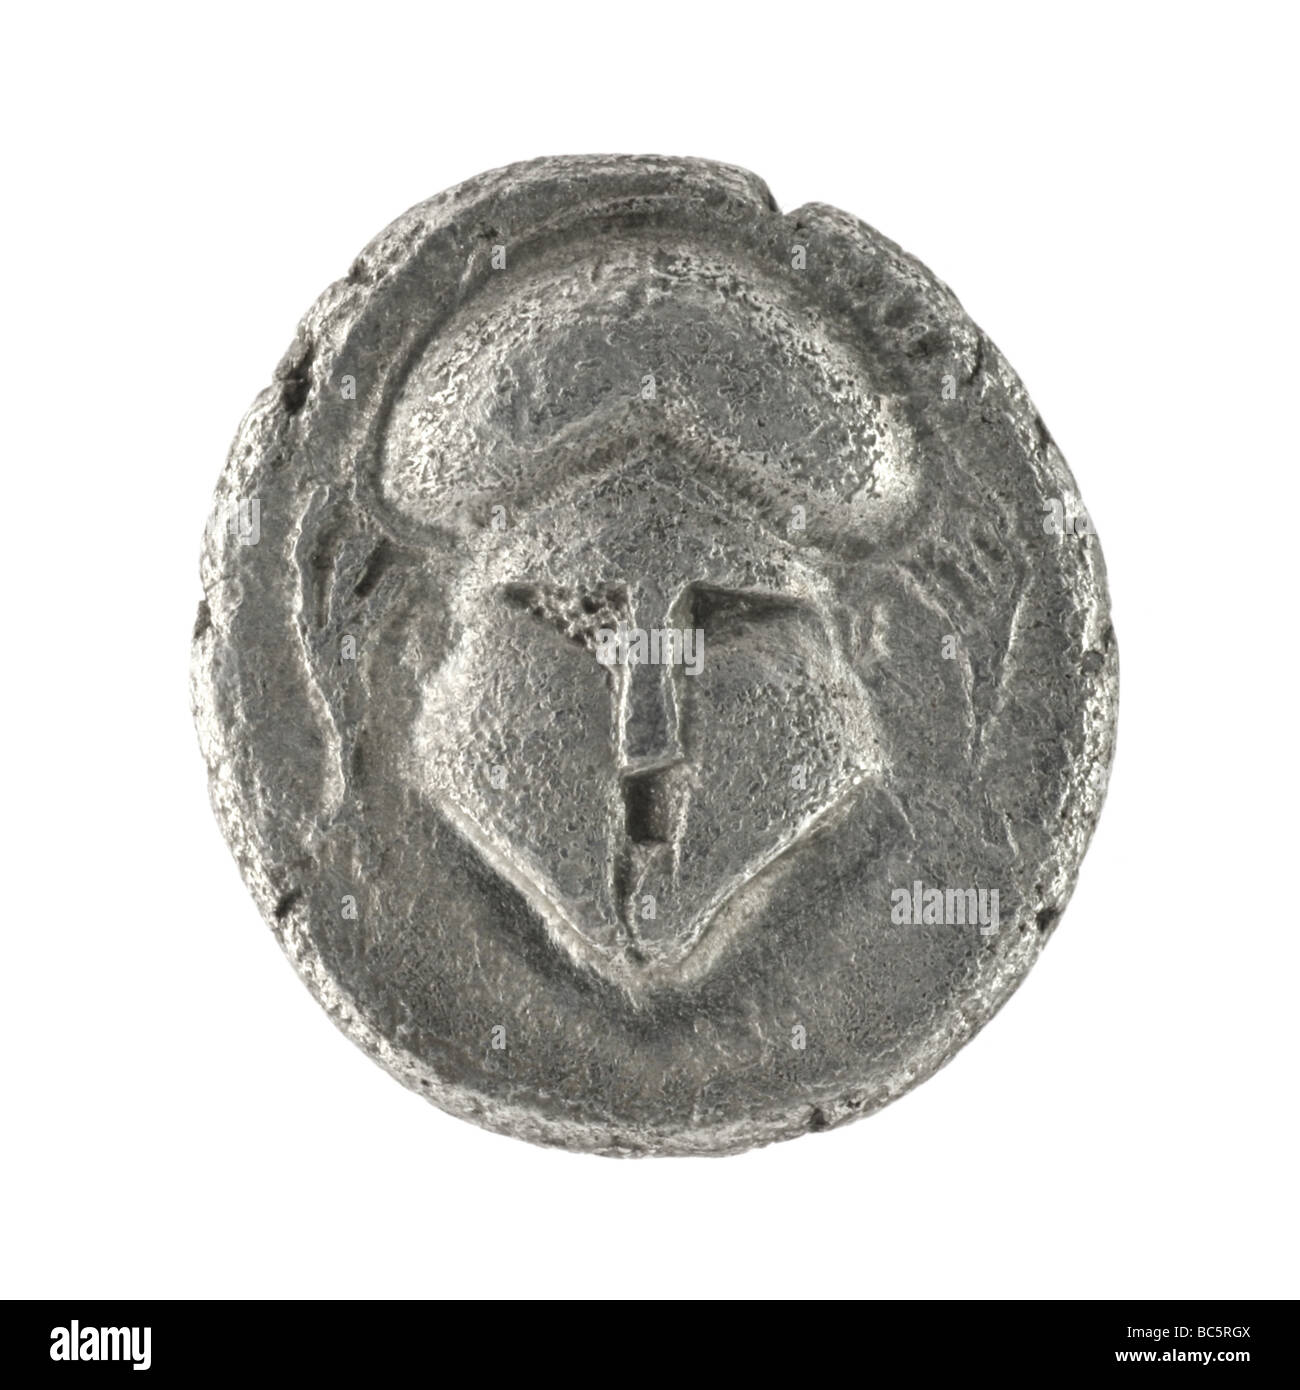 Crested helmet on ancient Greek diobol from 350 BC - Stock Image